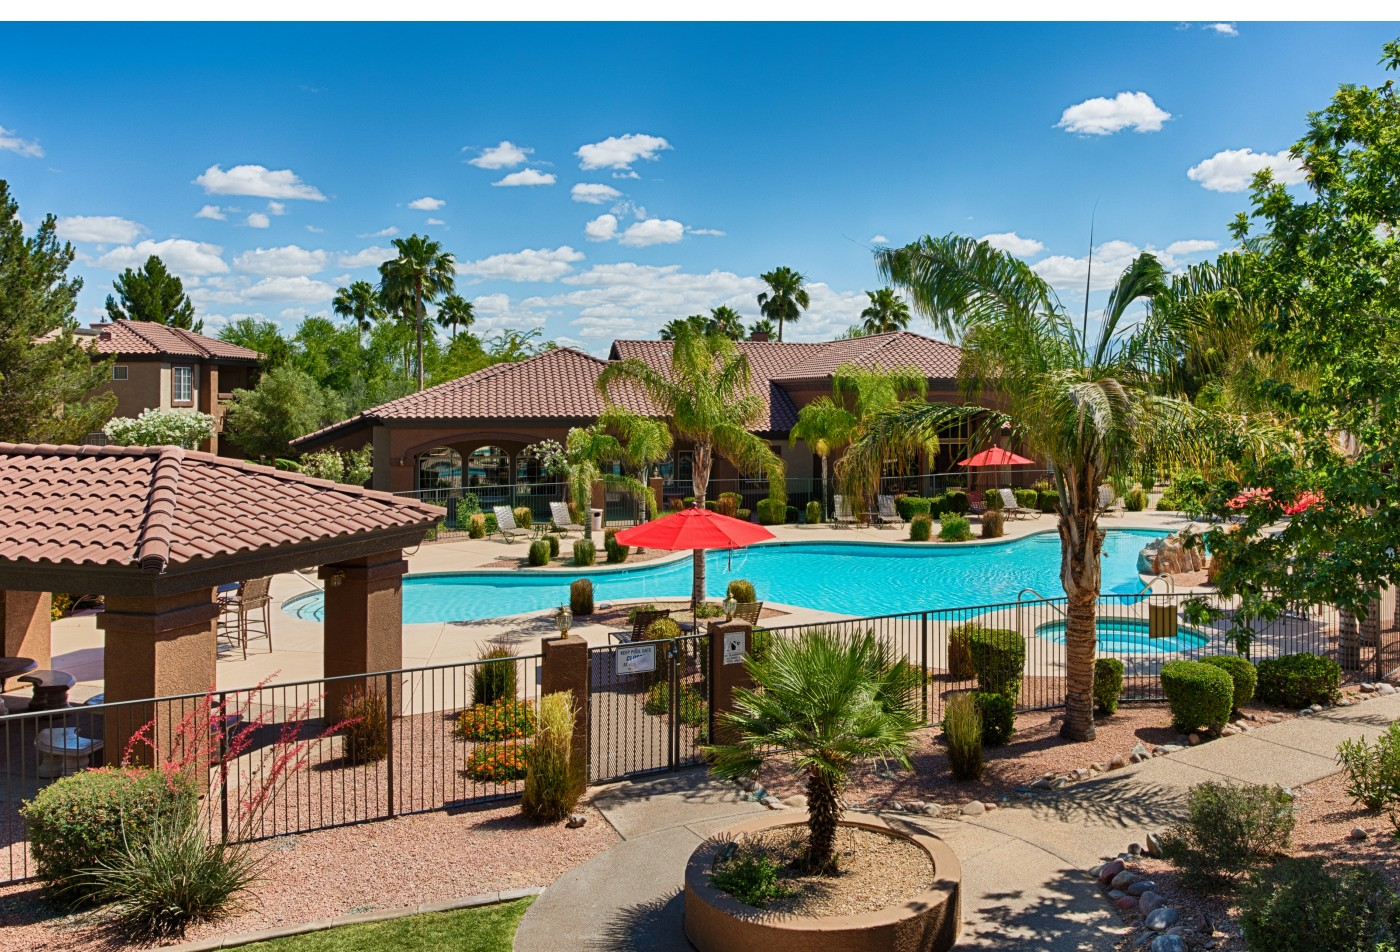 Springs at Silverbell Apartments Tucson, AZ pool, exterior anf landscaping